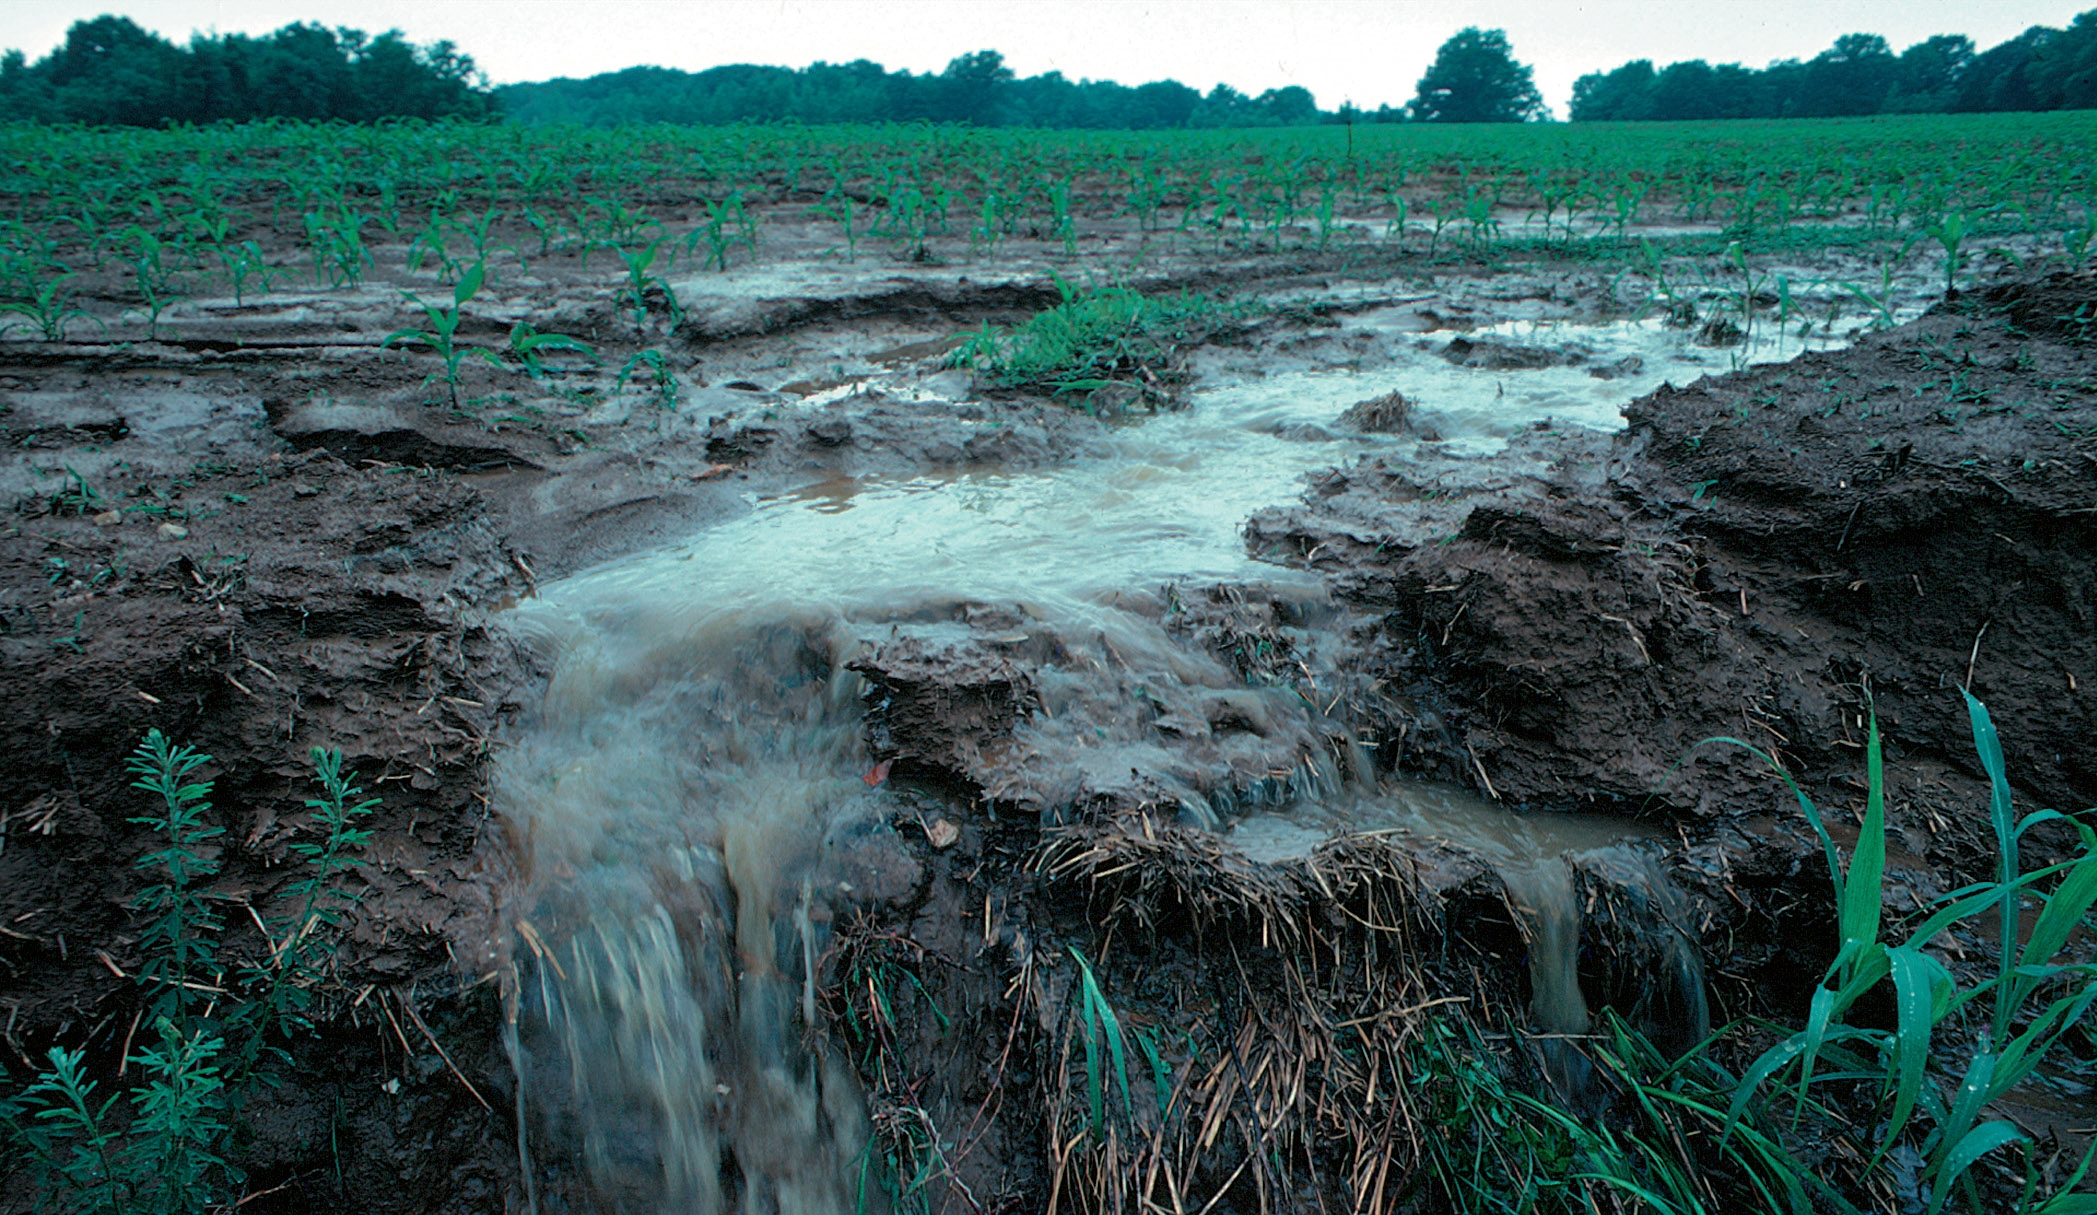 Or fertilizer wash off farmers field before crops use it to grow.